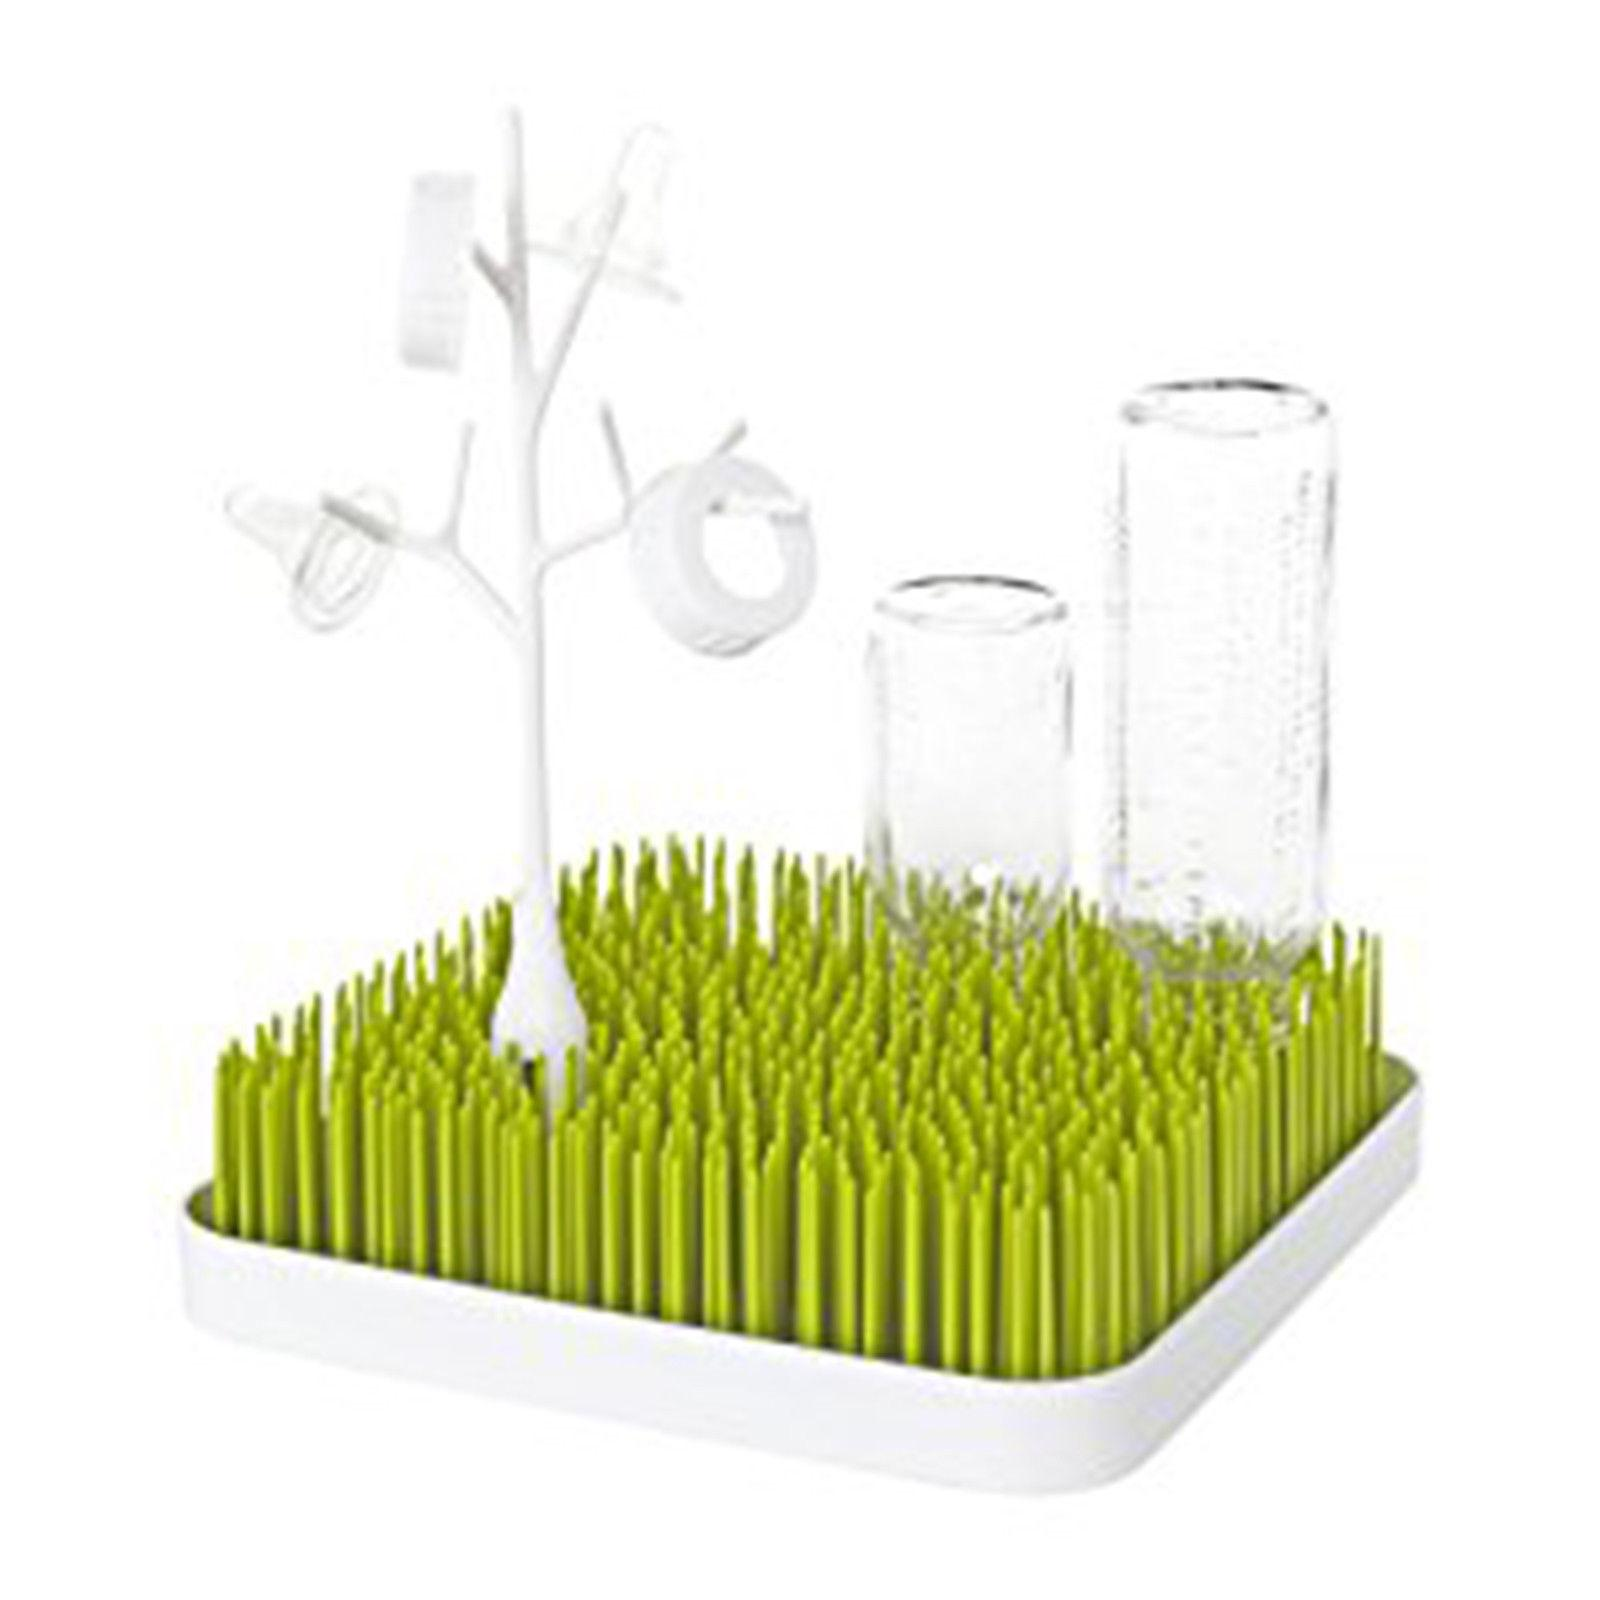 Drying Rack Grass Lawn Bottle Cup Small